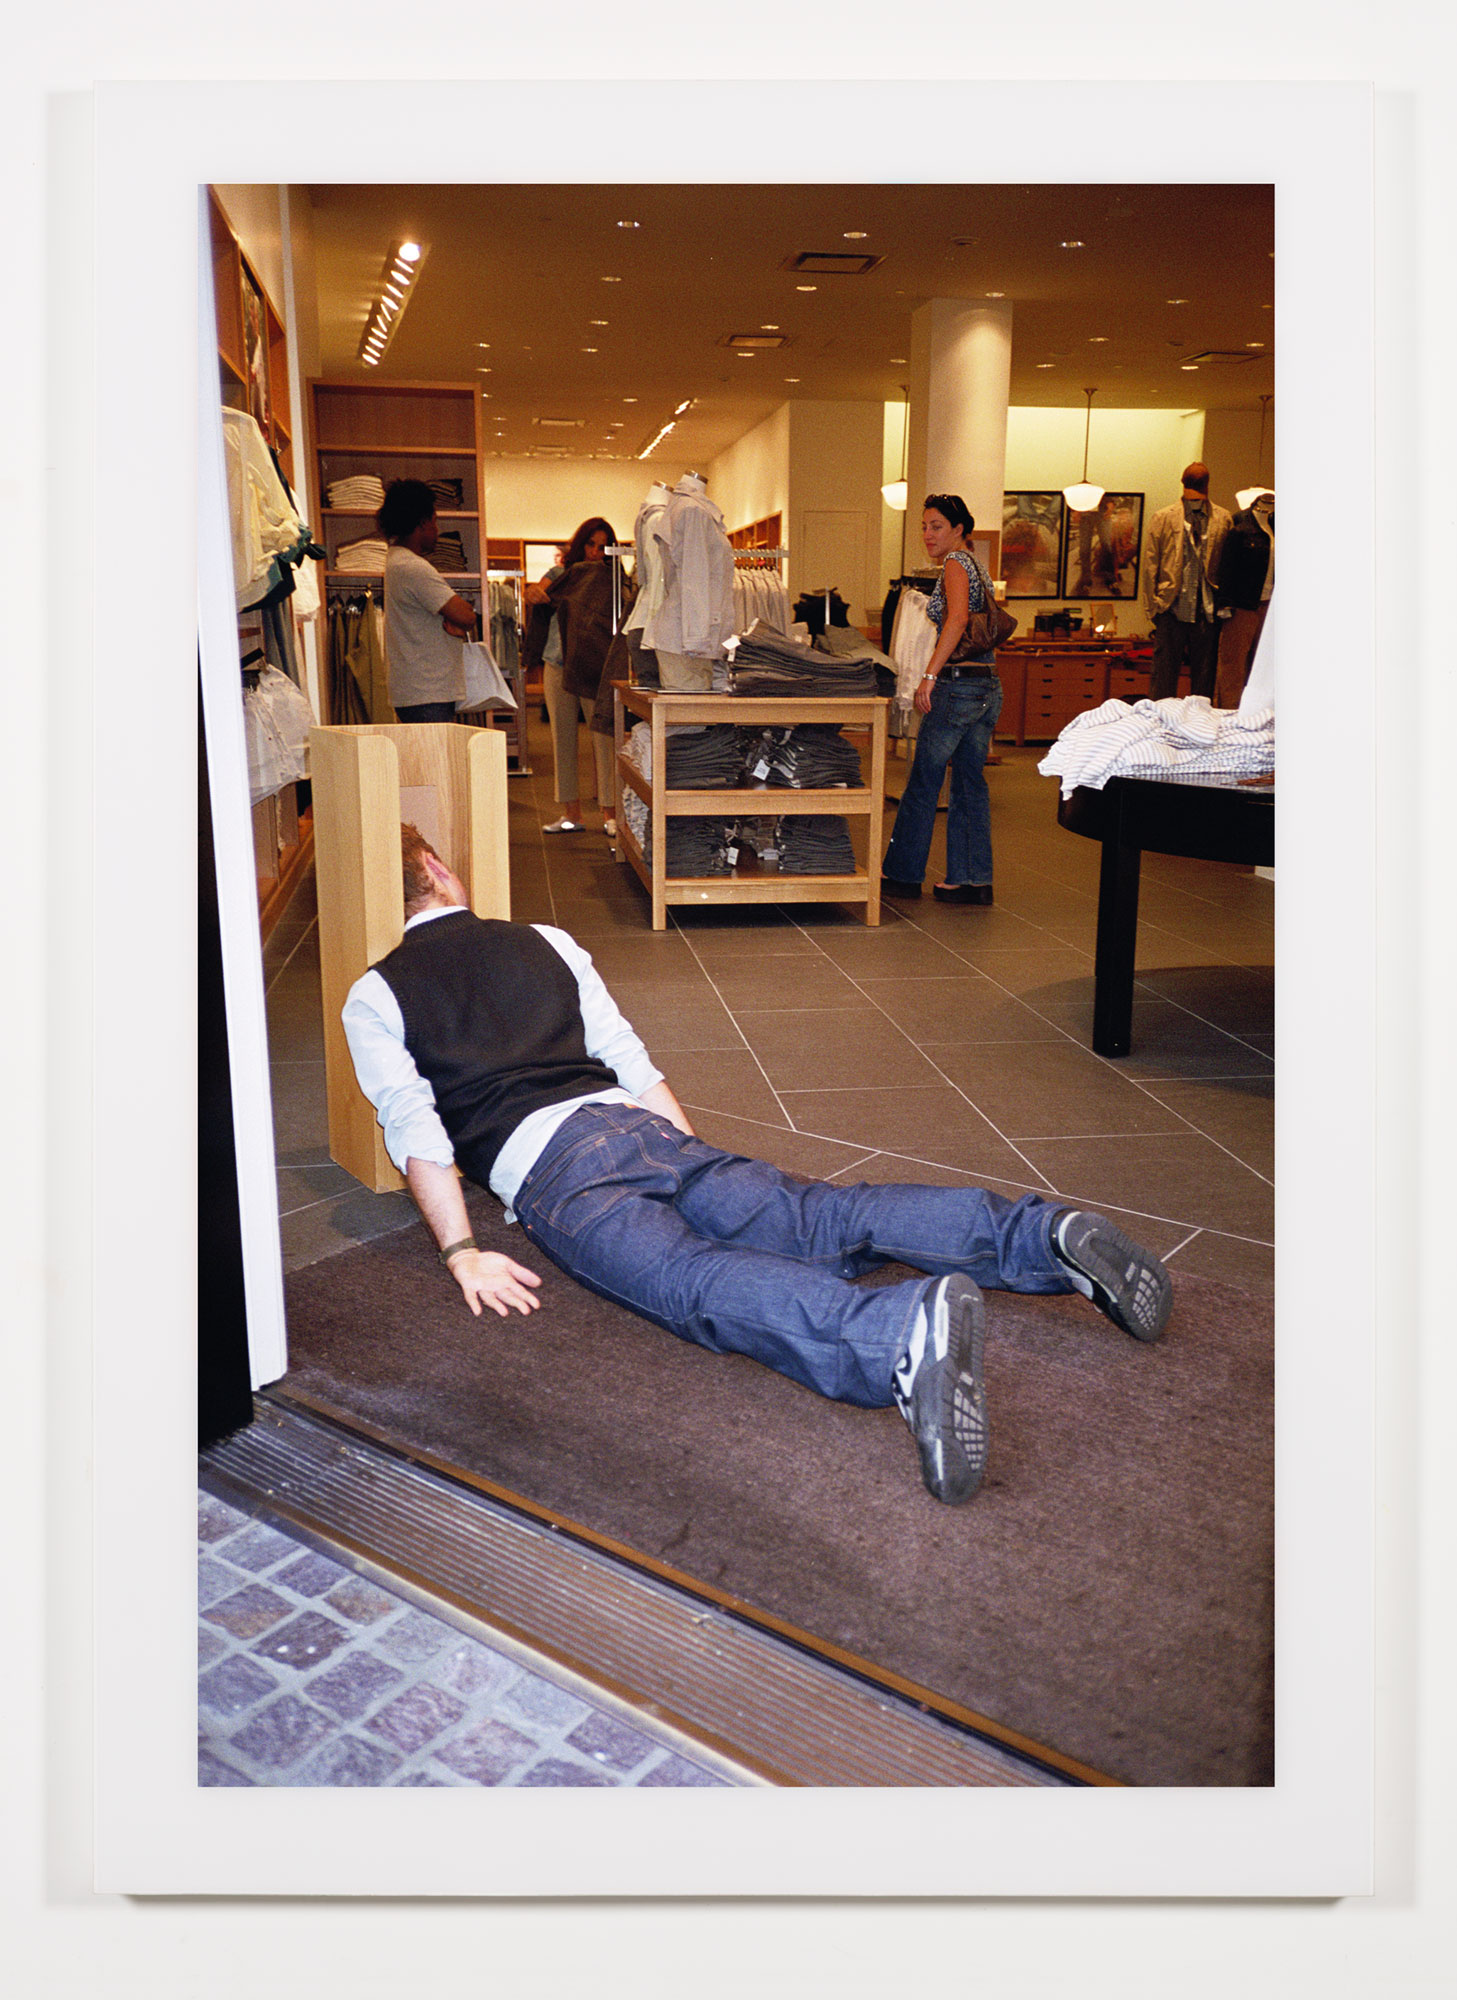 The Phenomenology of Shopping (J. Crew, The Grove, Los Angeles, CA)   2002  Chromogenic print  68 x 47 3/4 inches   The Phenomenology of Shopping, 2001–2003